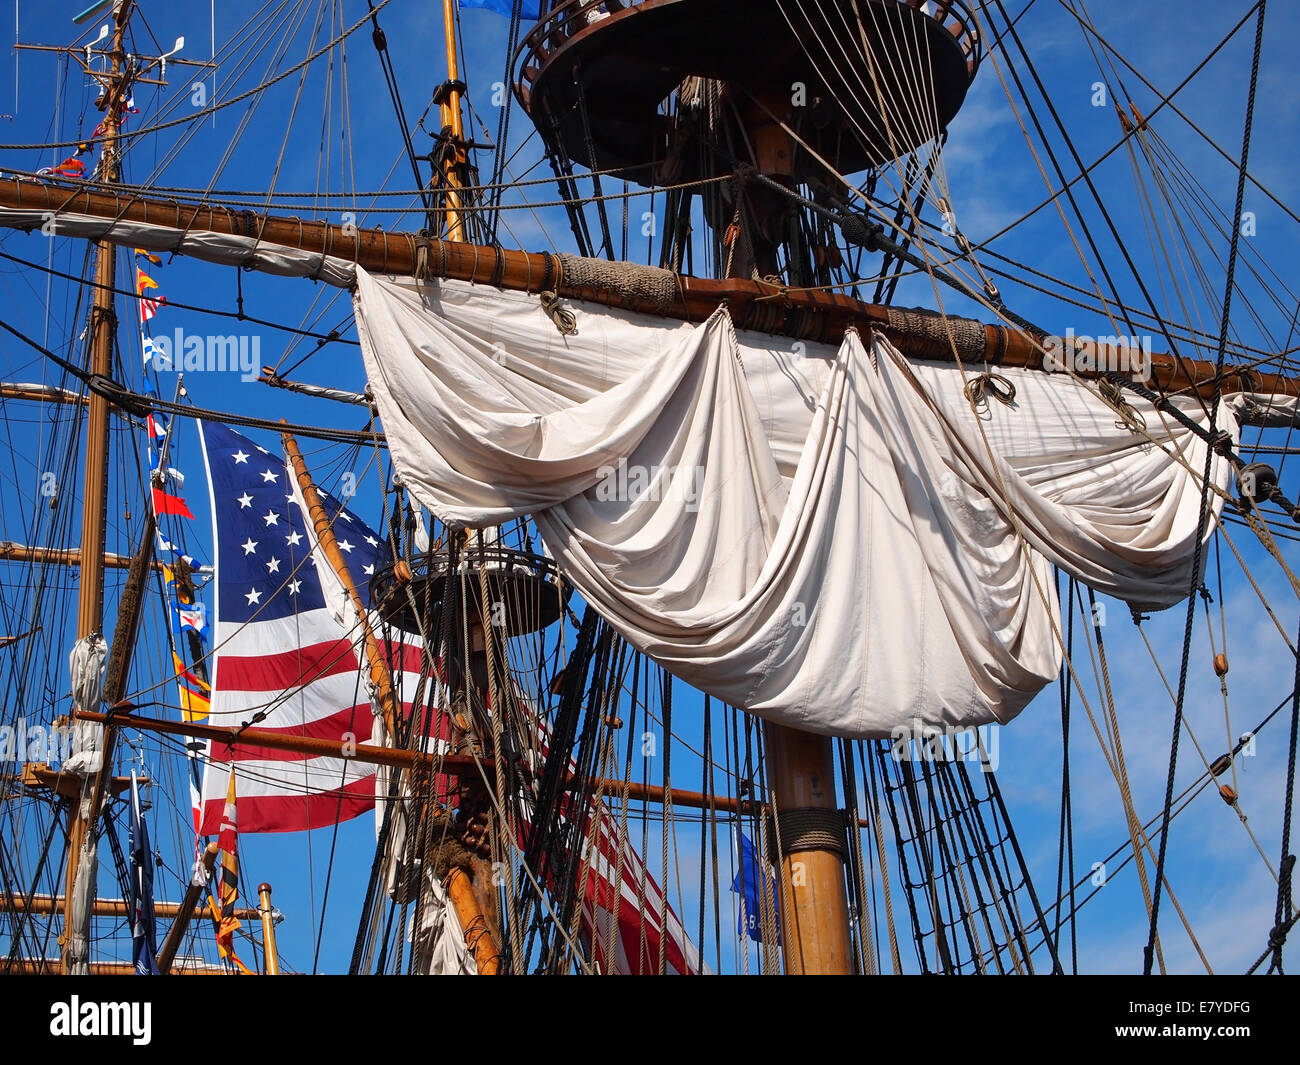 Looking up into the rigging and masts of a tall ship, a